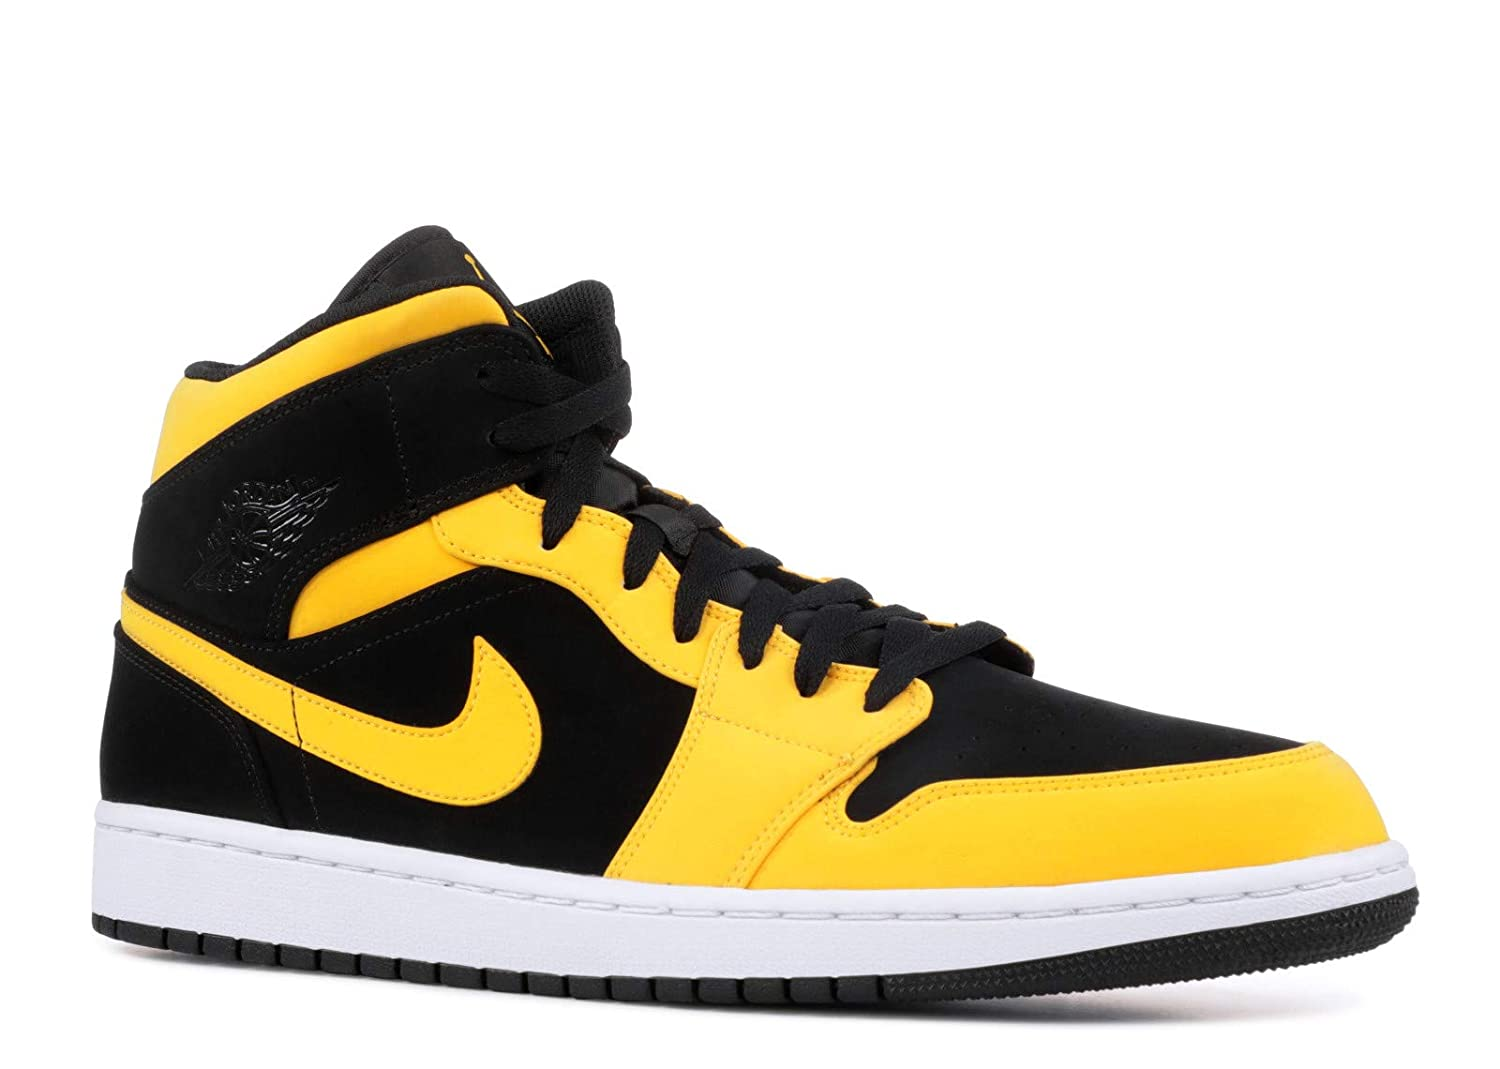 438eef24781 Amazon.com | AIR Jordan 1 MID 'Reverse New Love' - 554724-071 | Basketball